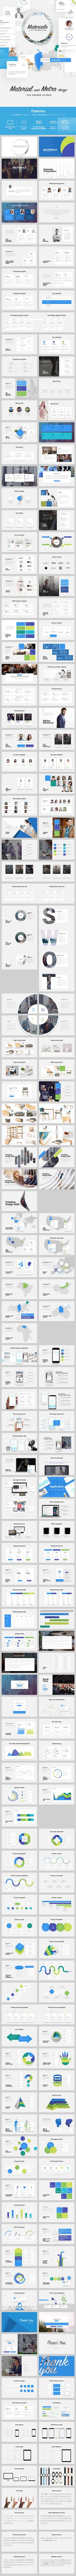 GraphicRiver Materialo Powerpoint UI KIT 16815417